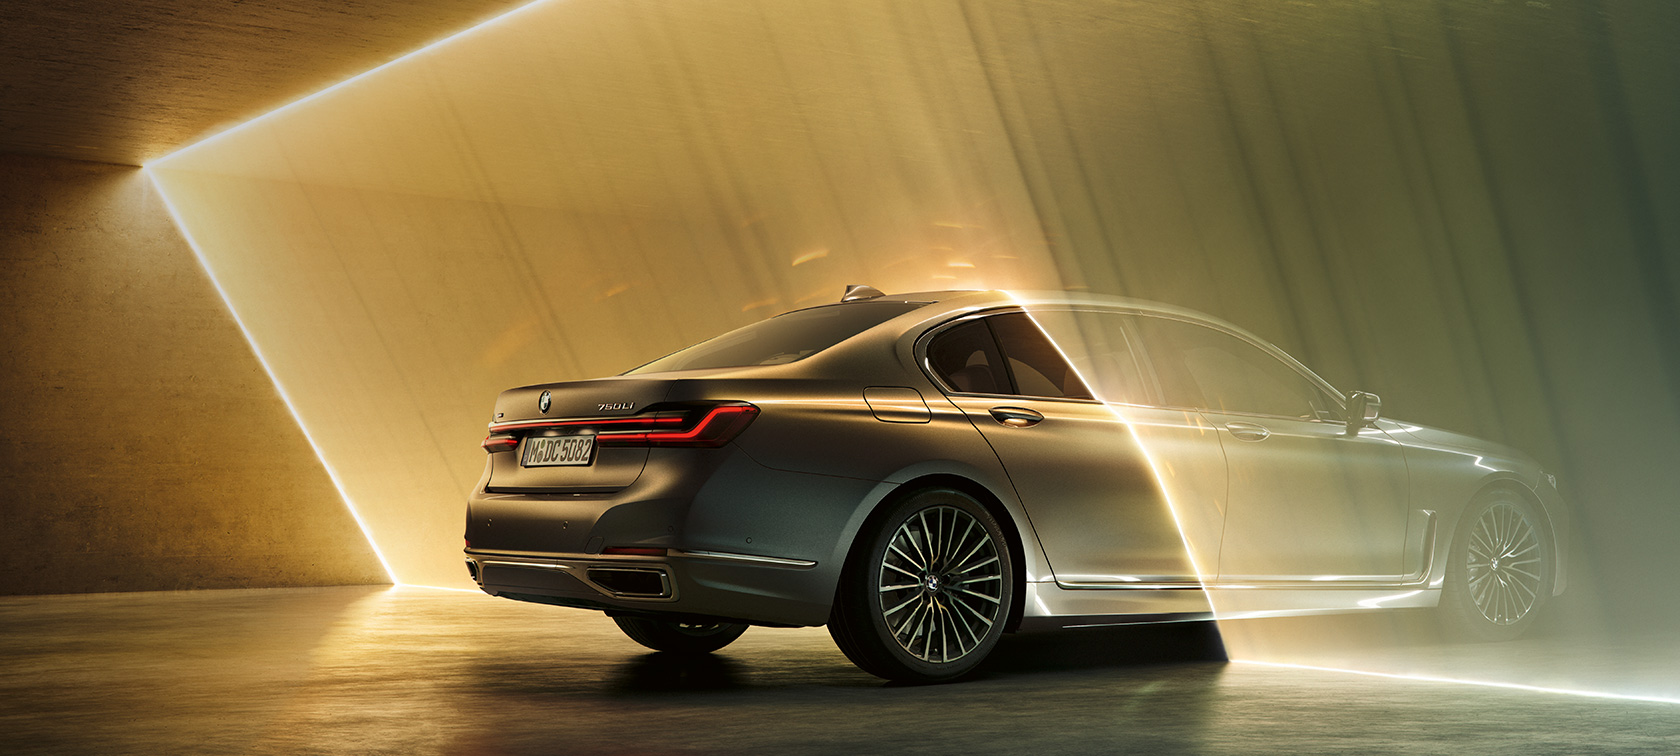 BMW 7 Series Sedan, luxury sedan, luxury class, Inform